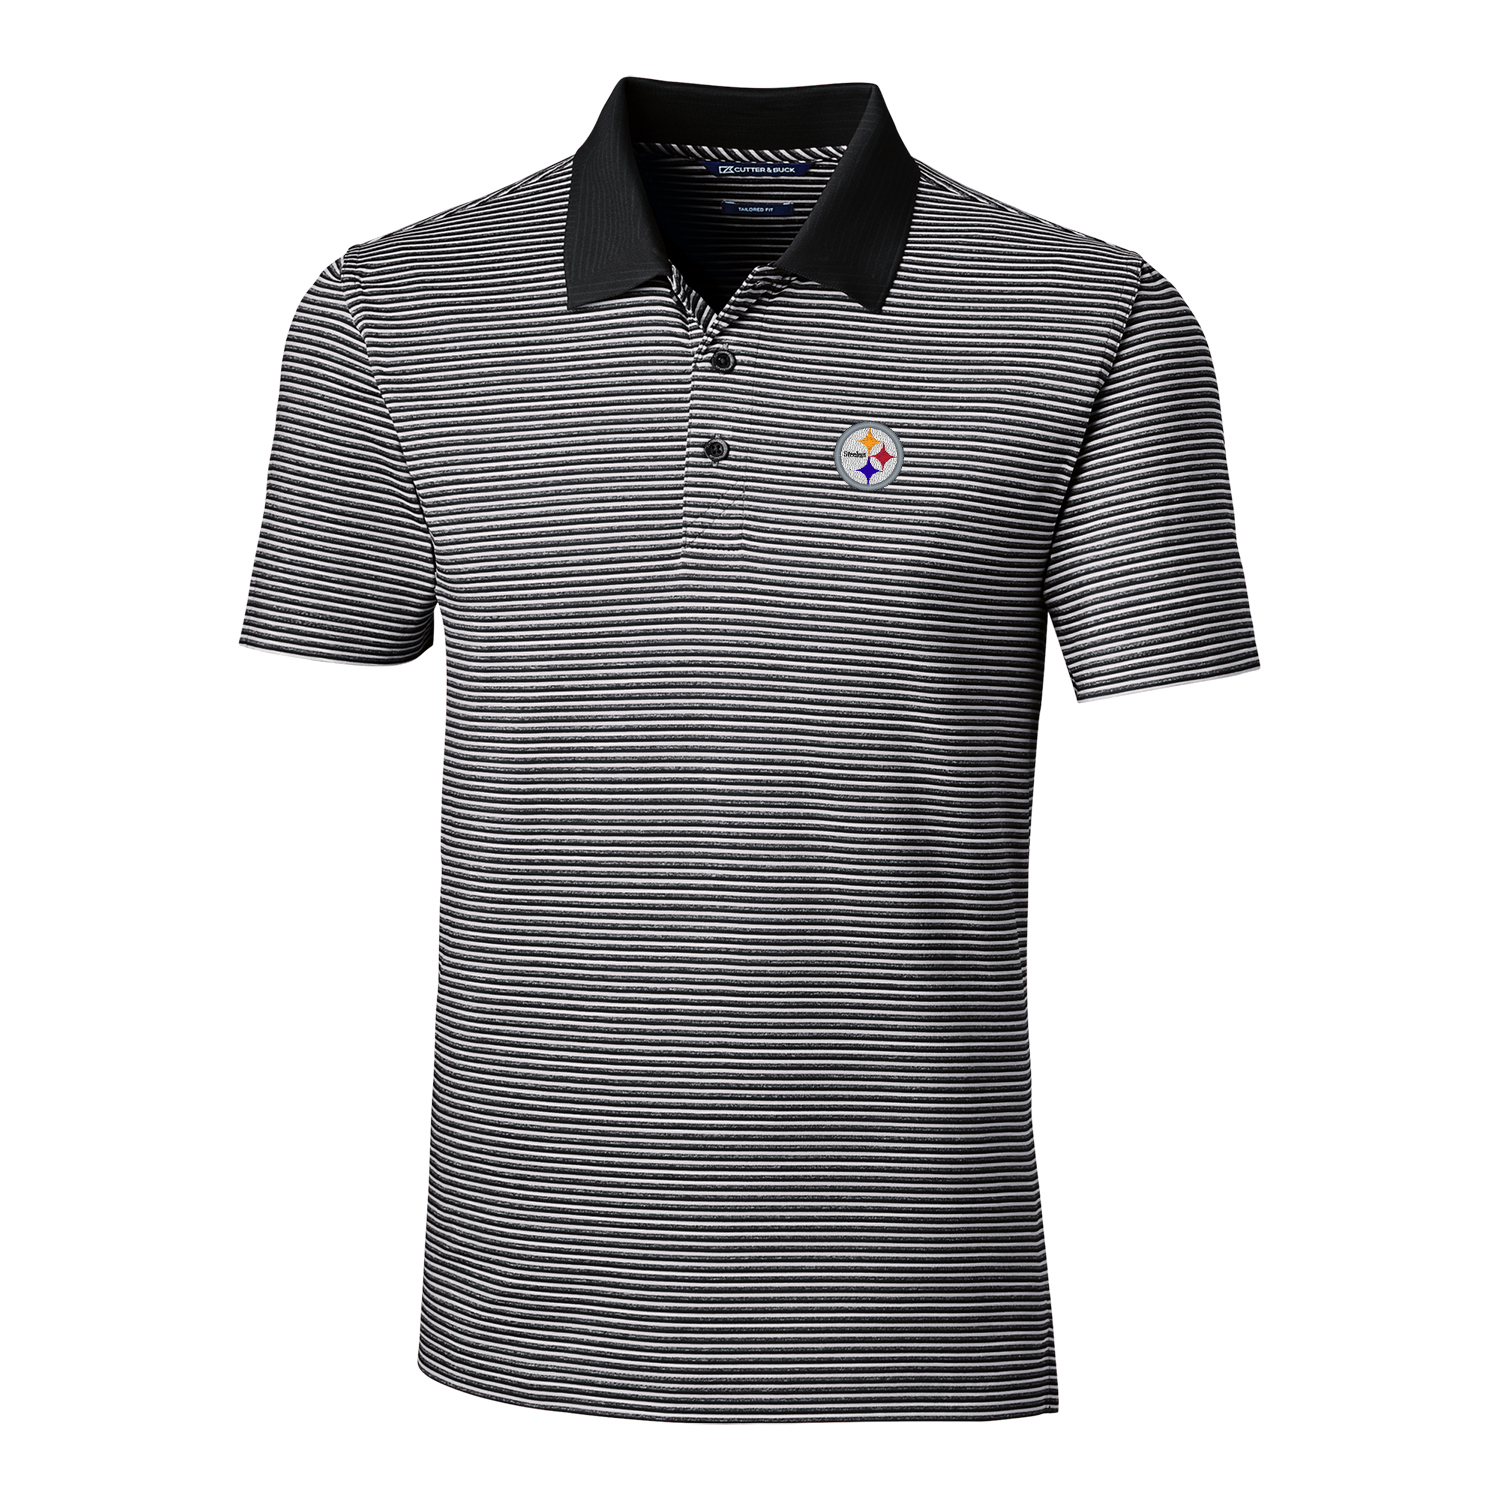 Pittsburgh Steelers Cutter & Buck Forge Tonal Stripe Tailored Fit Polo - Black